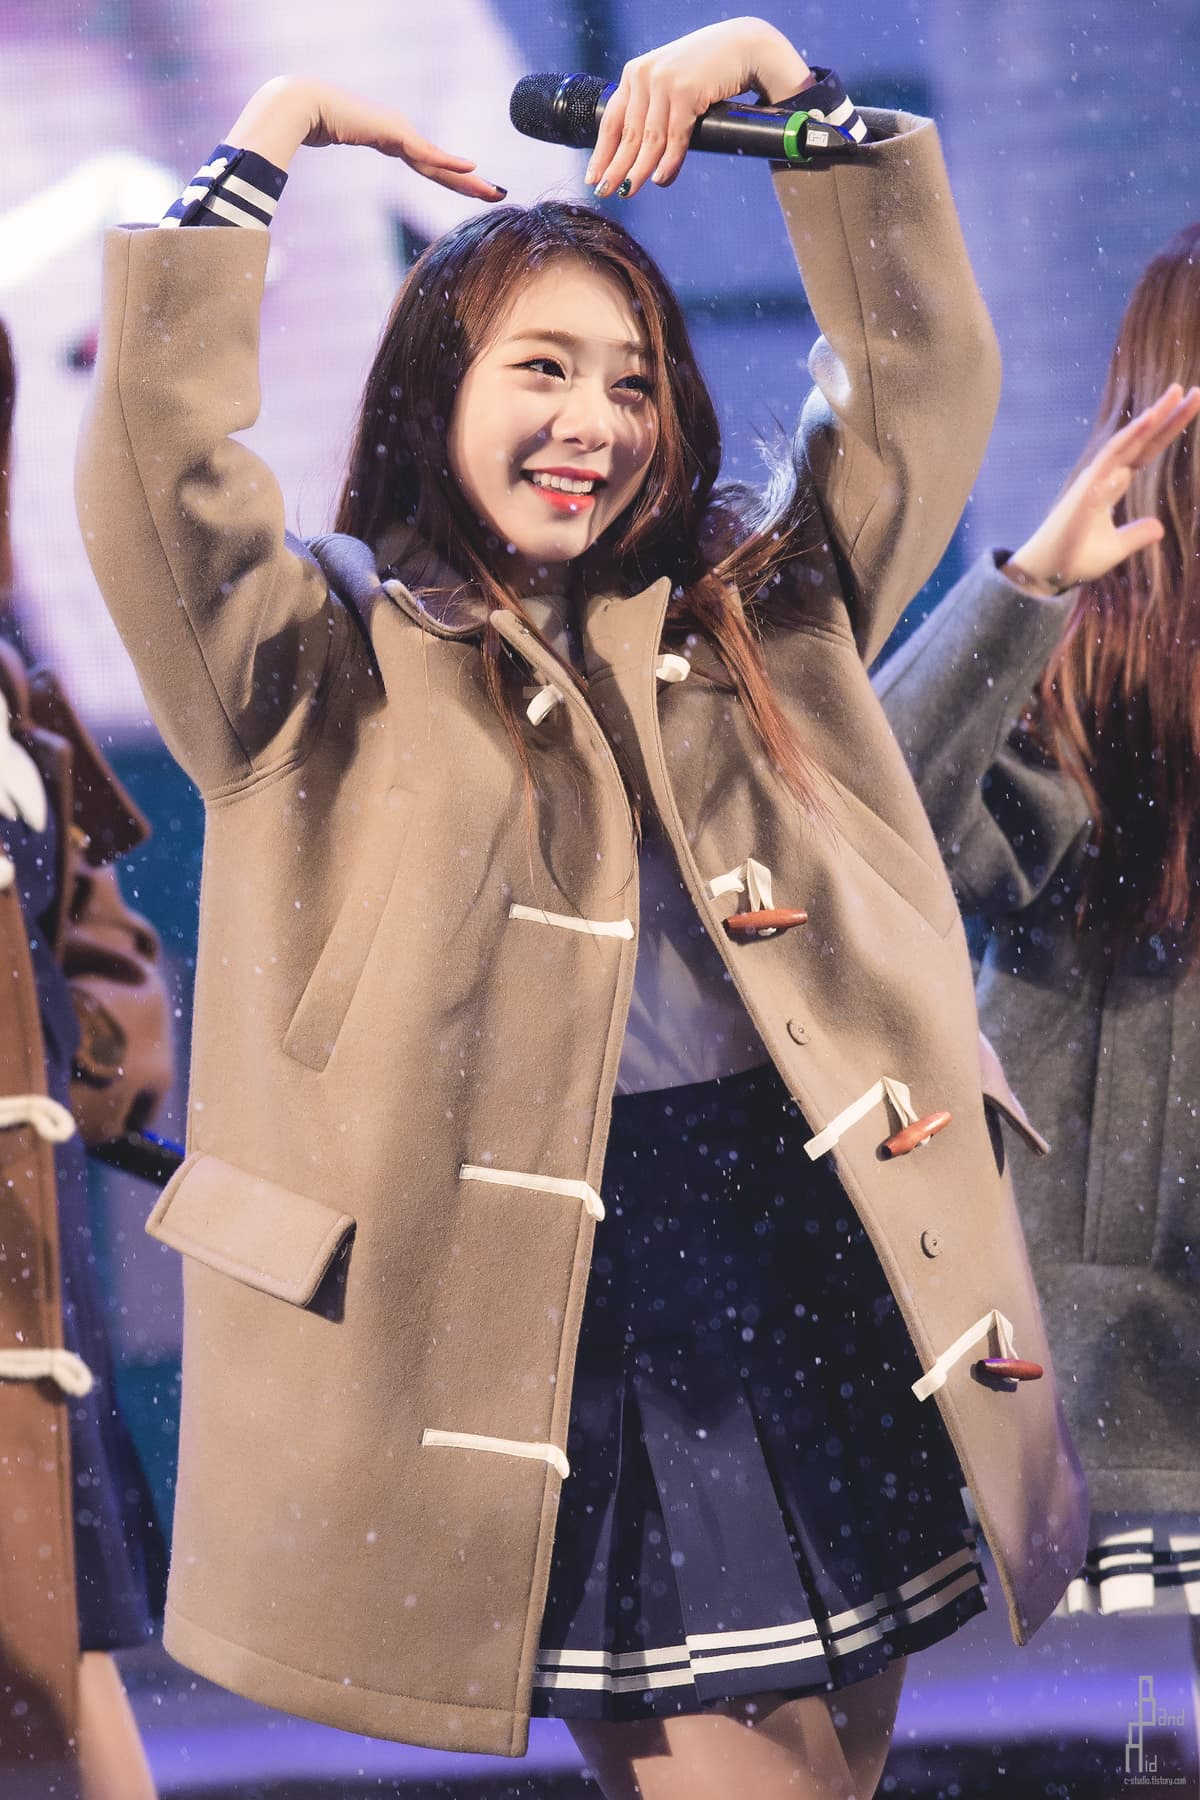 170129 WJSN - Y Snow Night - 296p